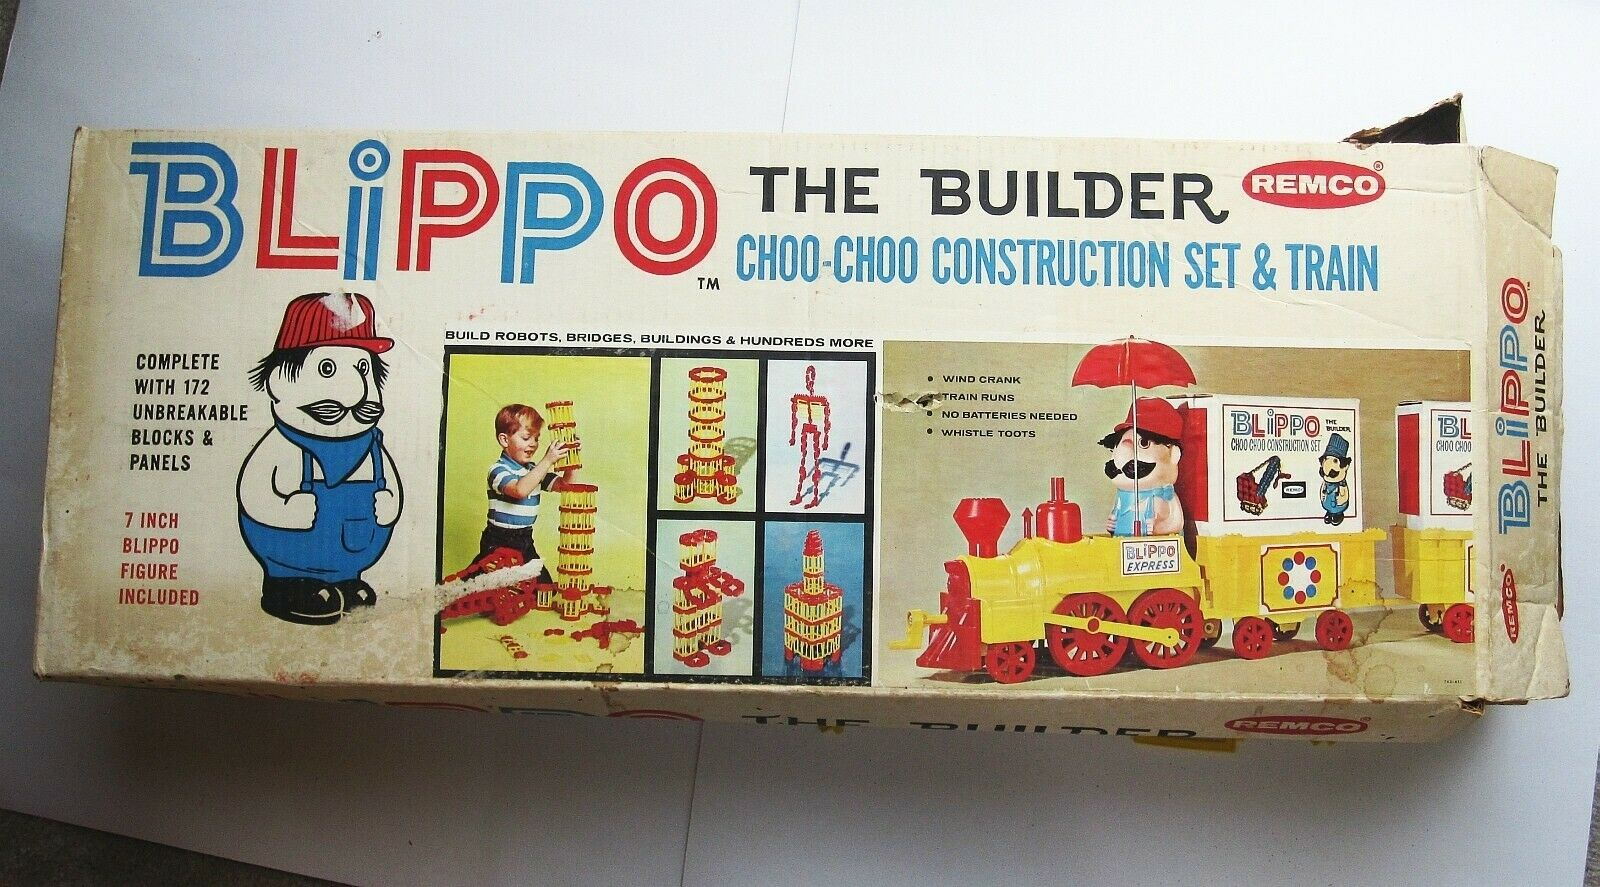 1965 Remco Blippo the Builder Choo Choo Construction Big Toy Train Set Vintage